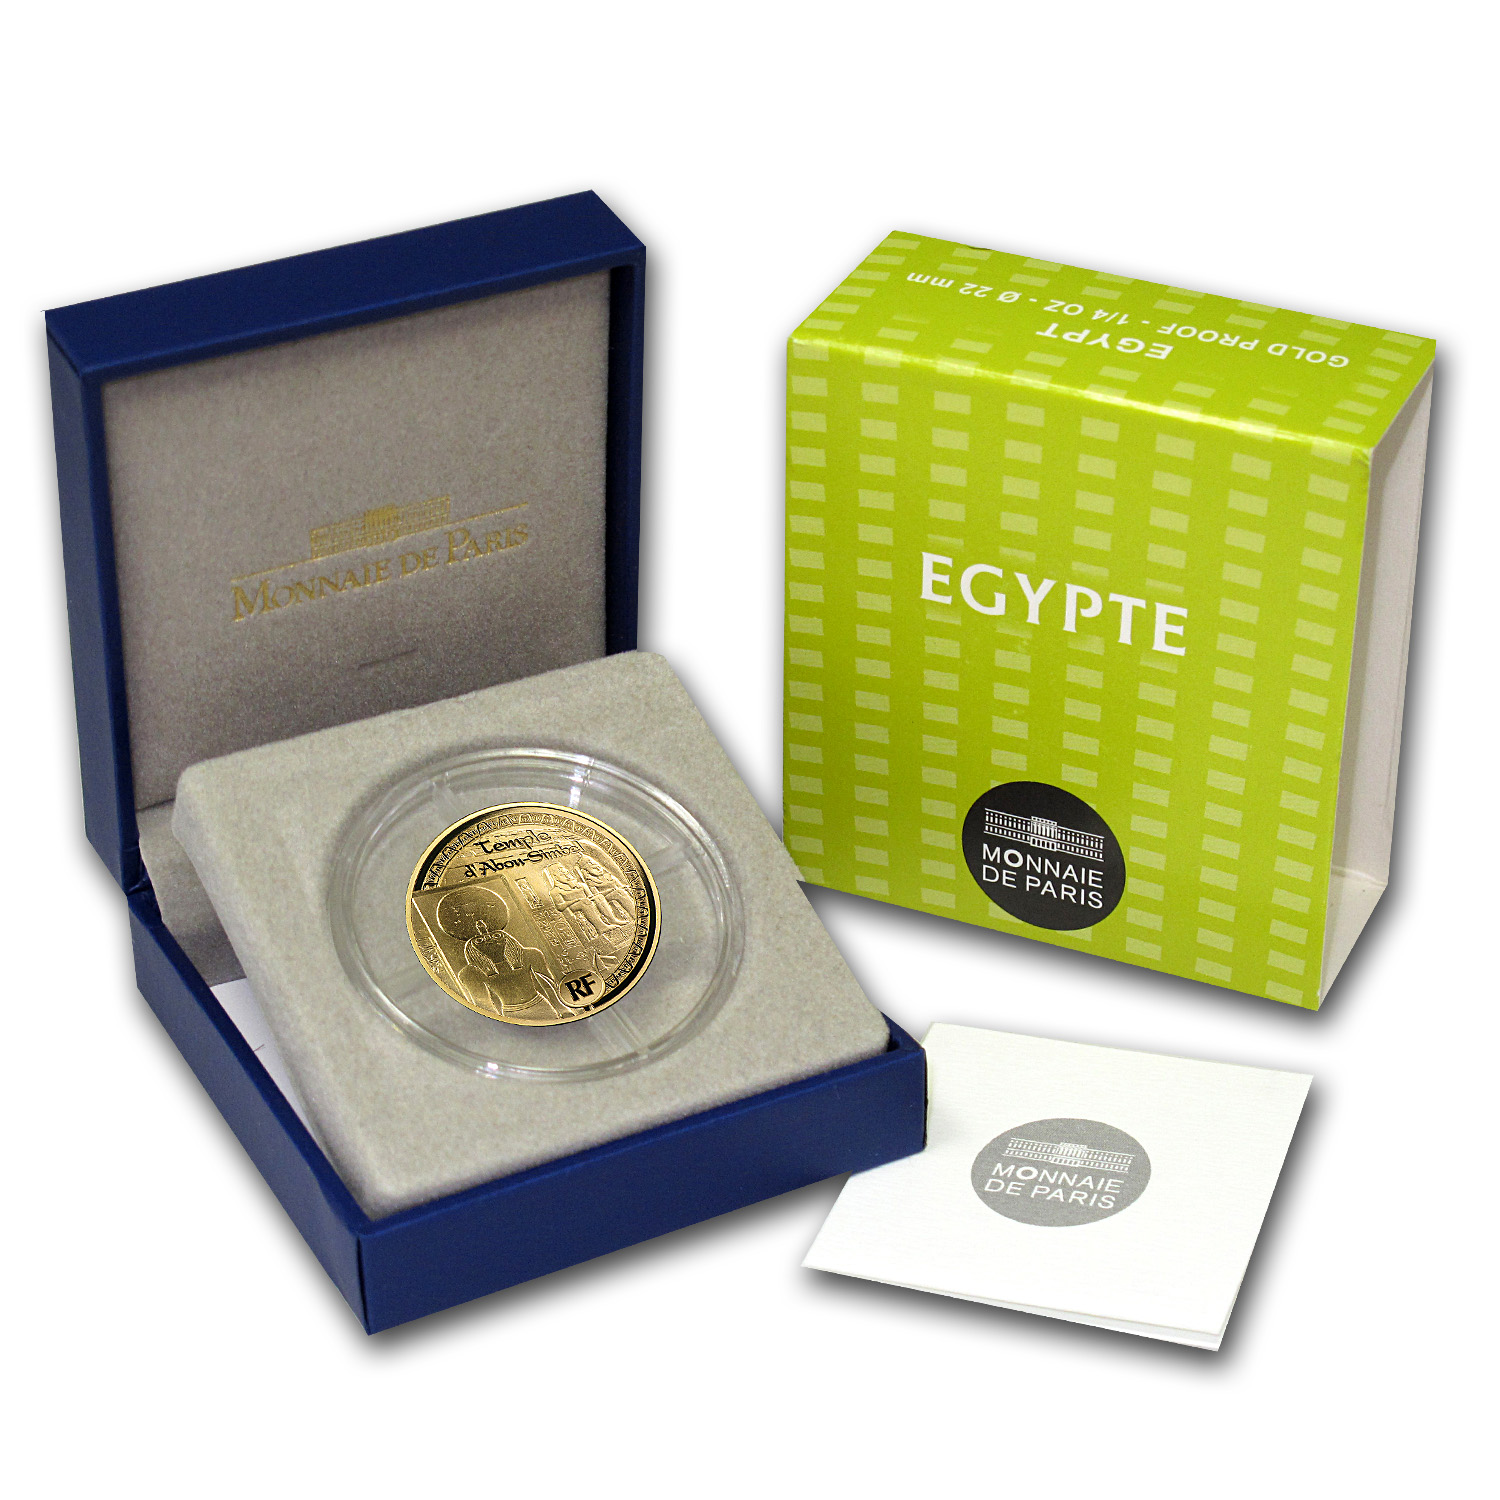 2012 1/4 oz Proof Gold €50 Egyptian Heritage Abu Simbel